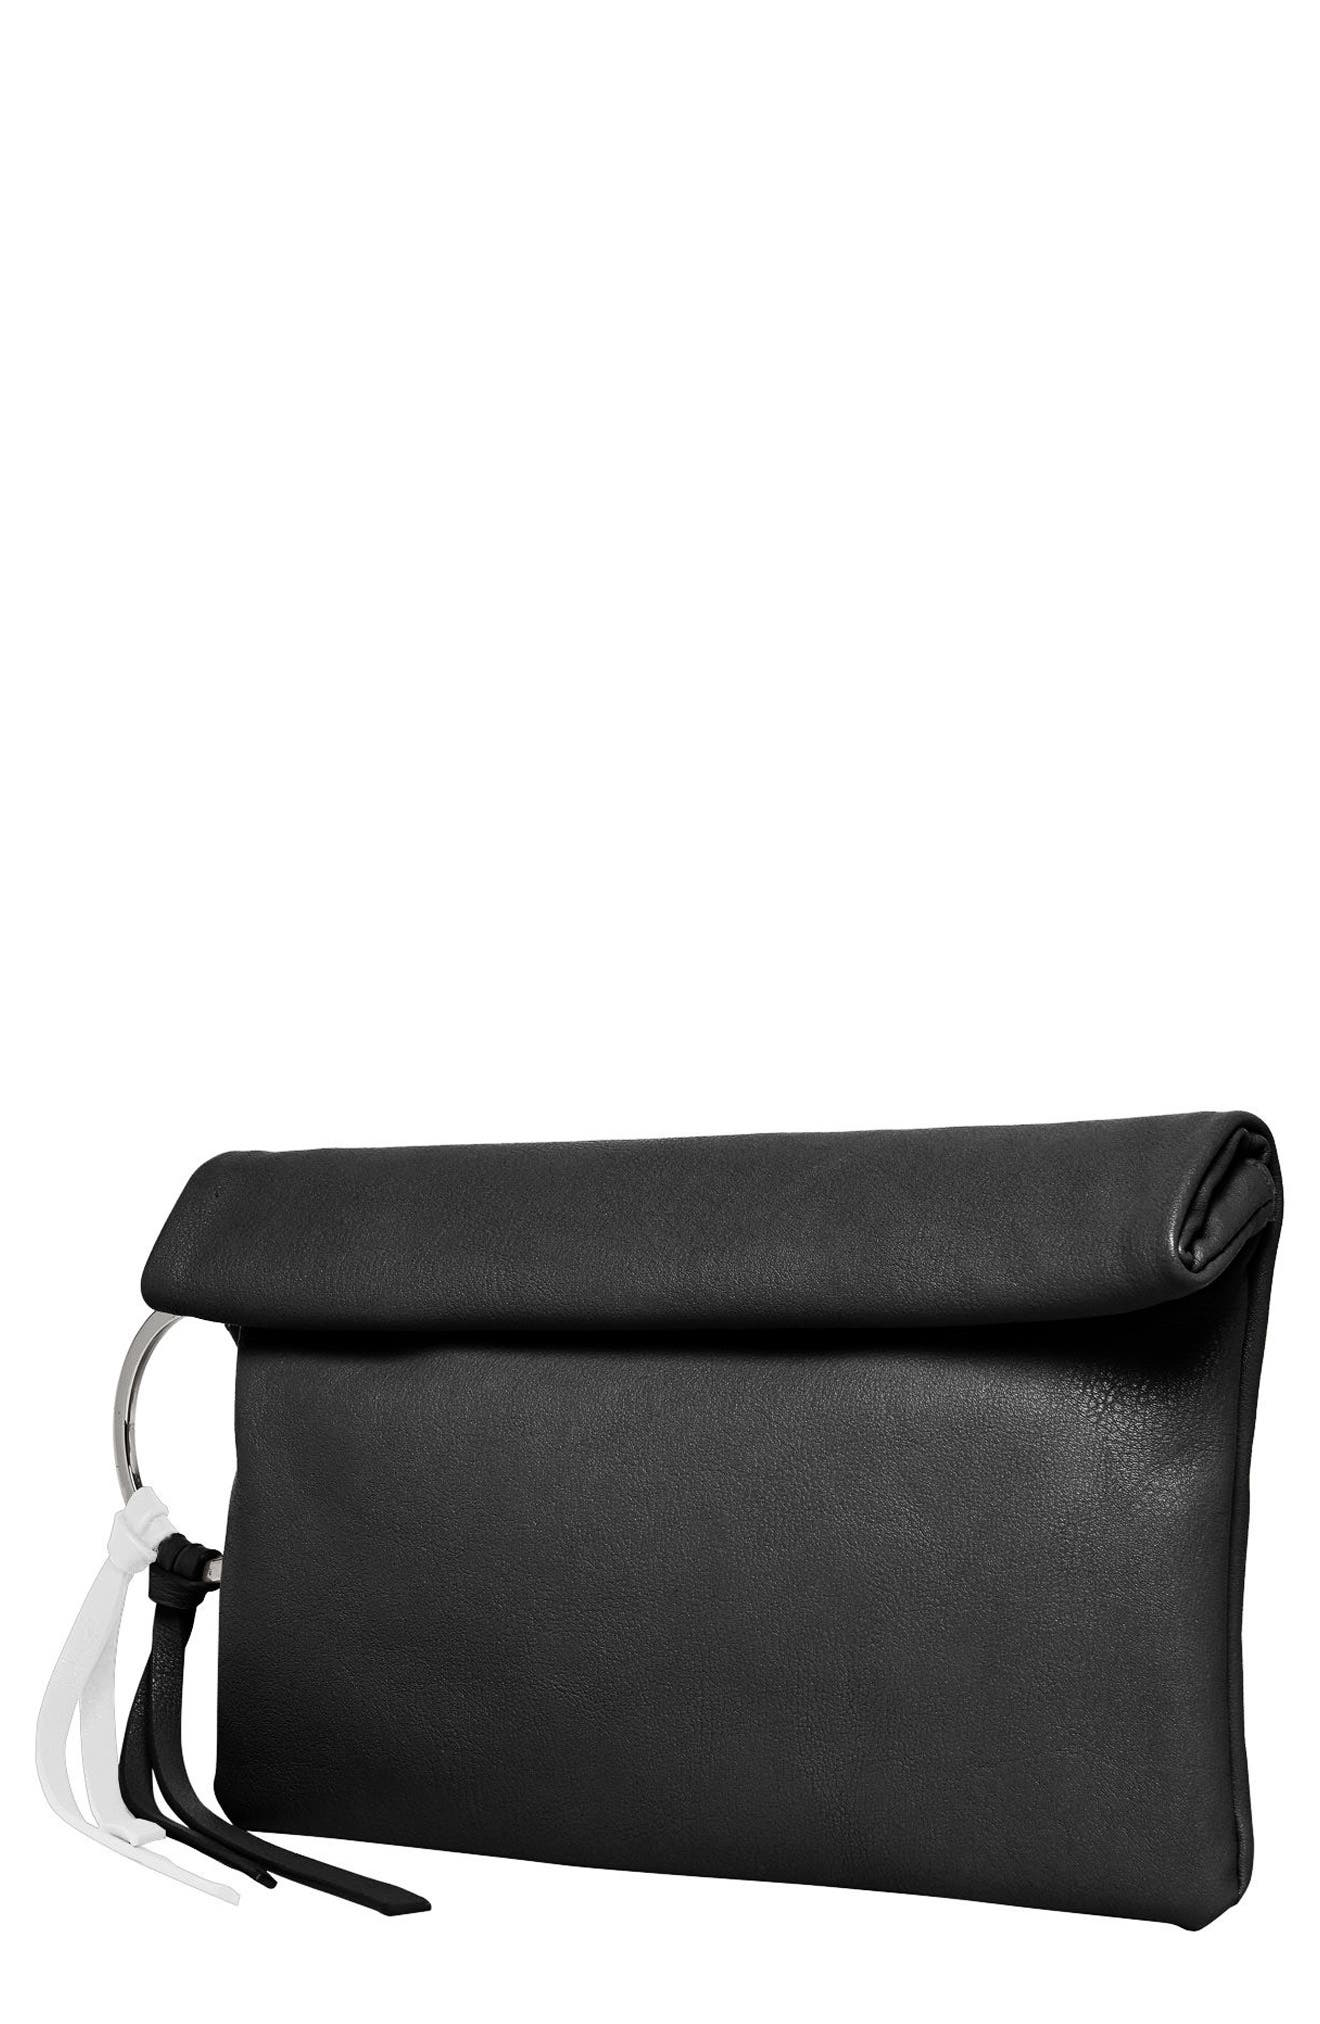 Lost Lover Vegan Leather Clutch,                         Main,                         color, 001